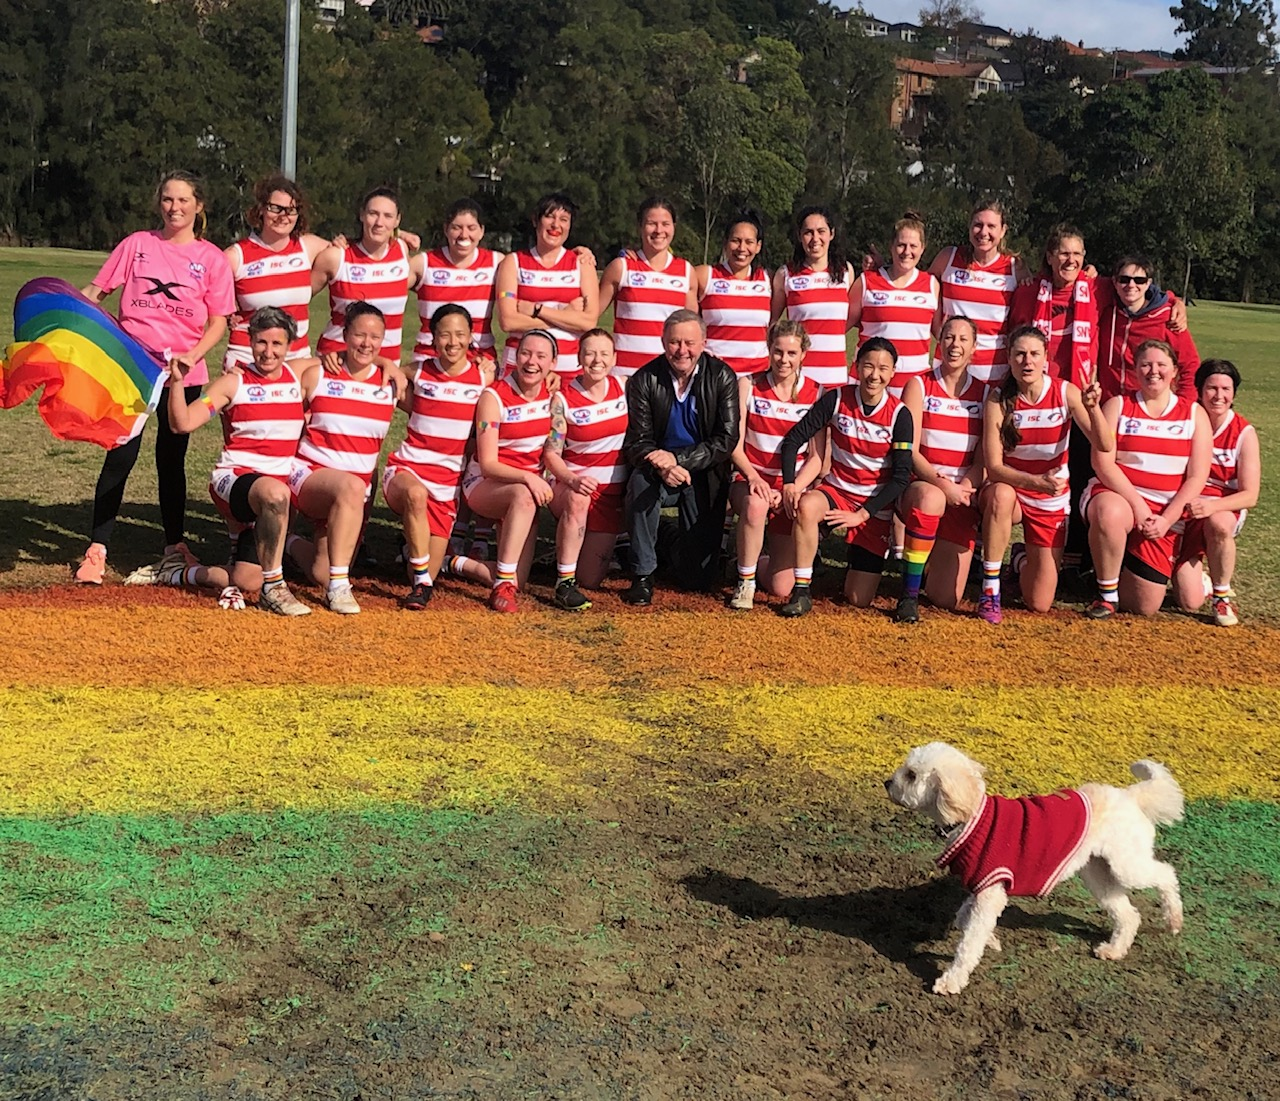 The 2019 Womens team for their Pride Round